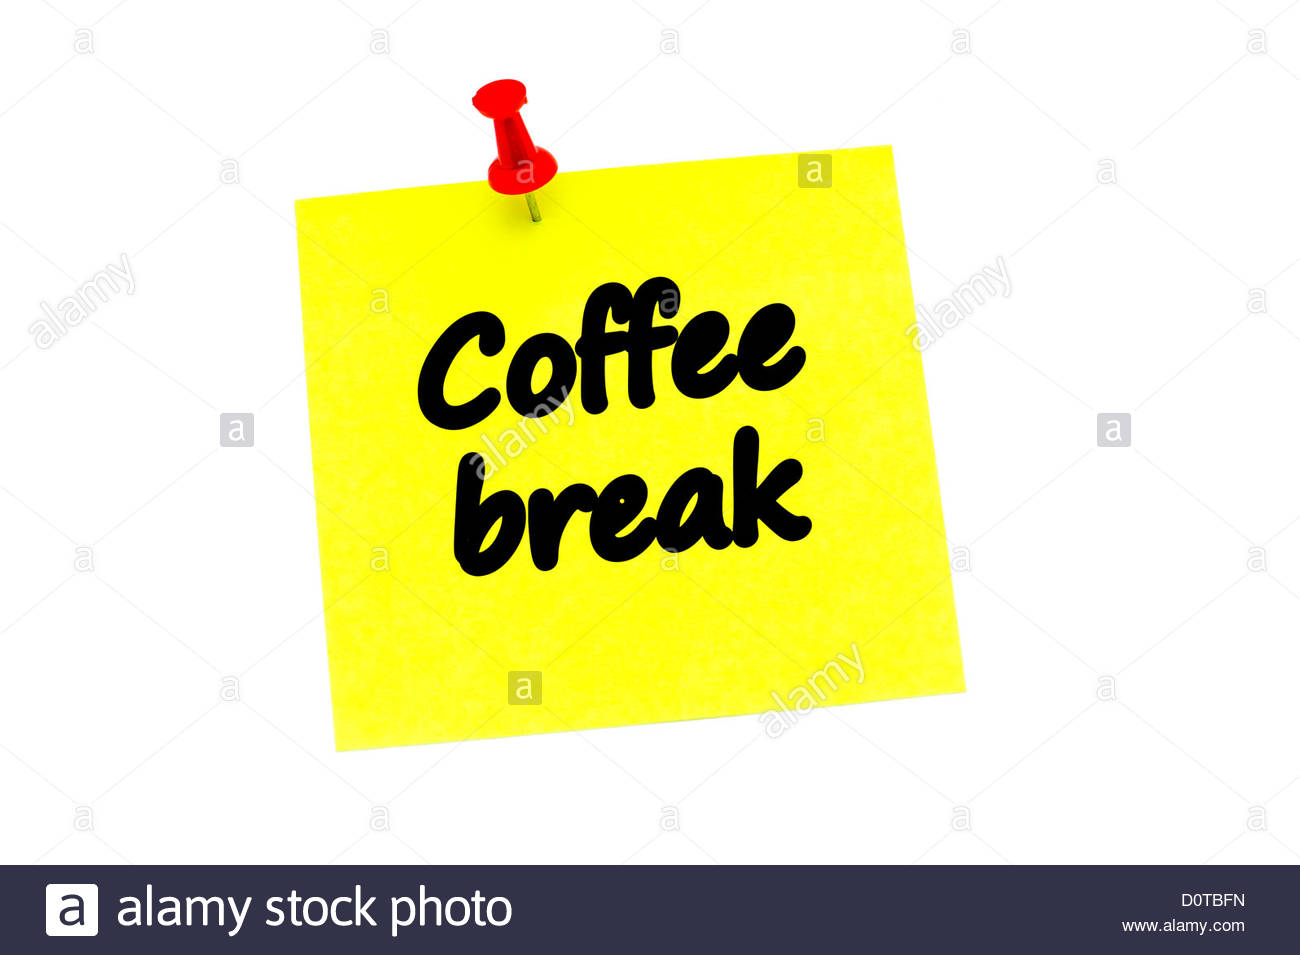 Coffee break written on a yellow post it note, held in place with a red push pin and isolated on a white background. - Stock Image